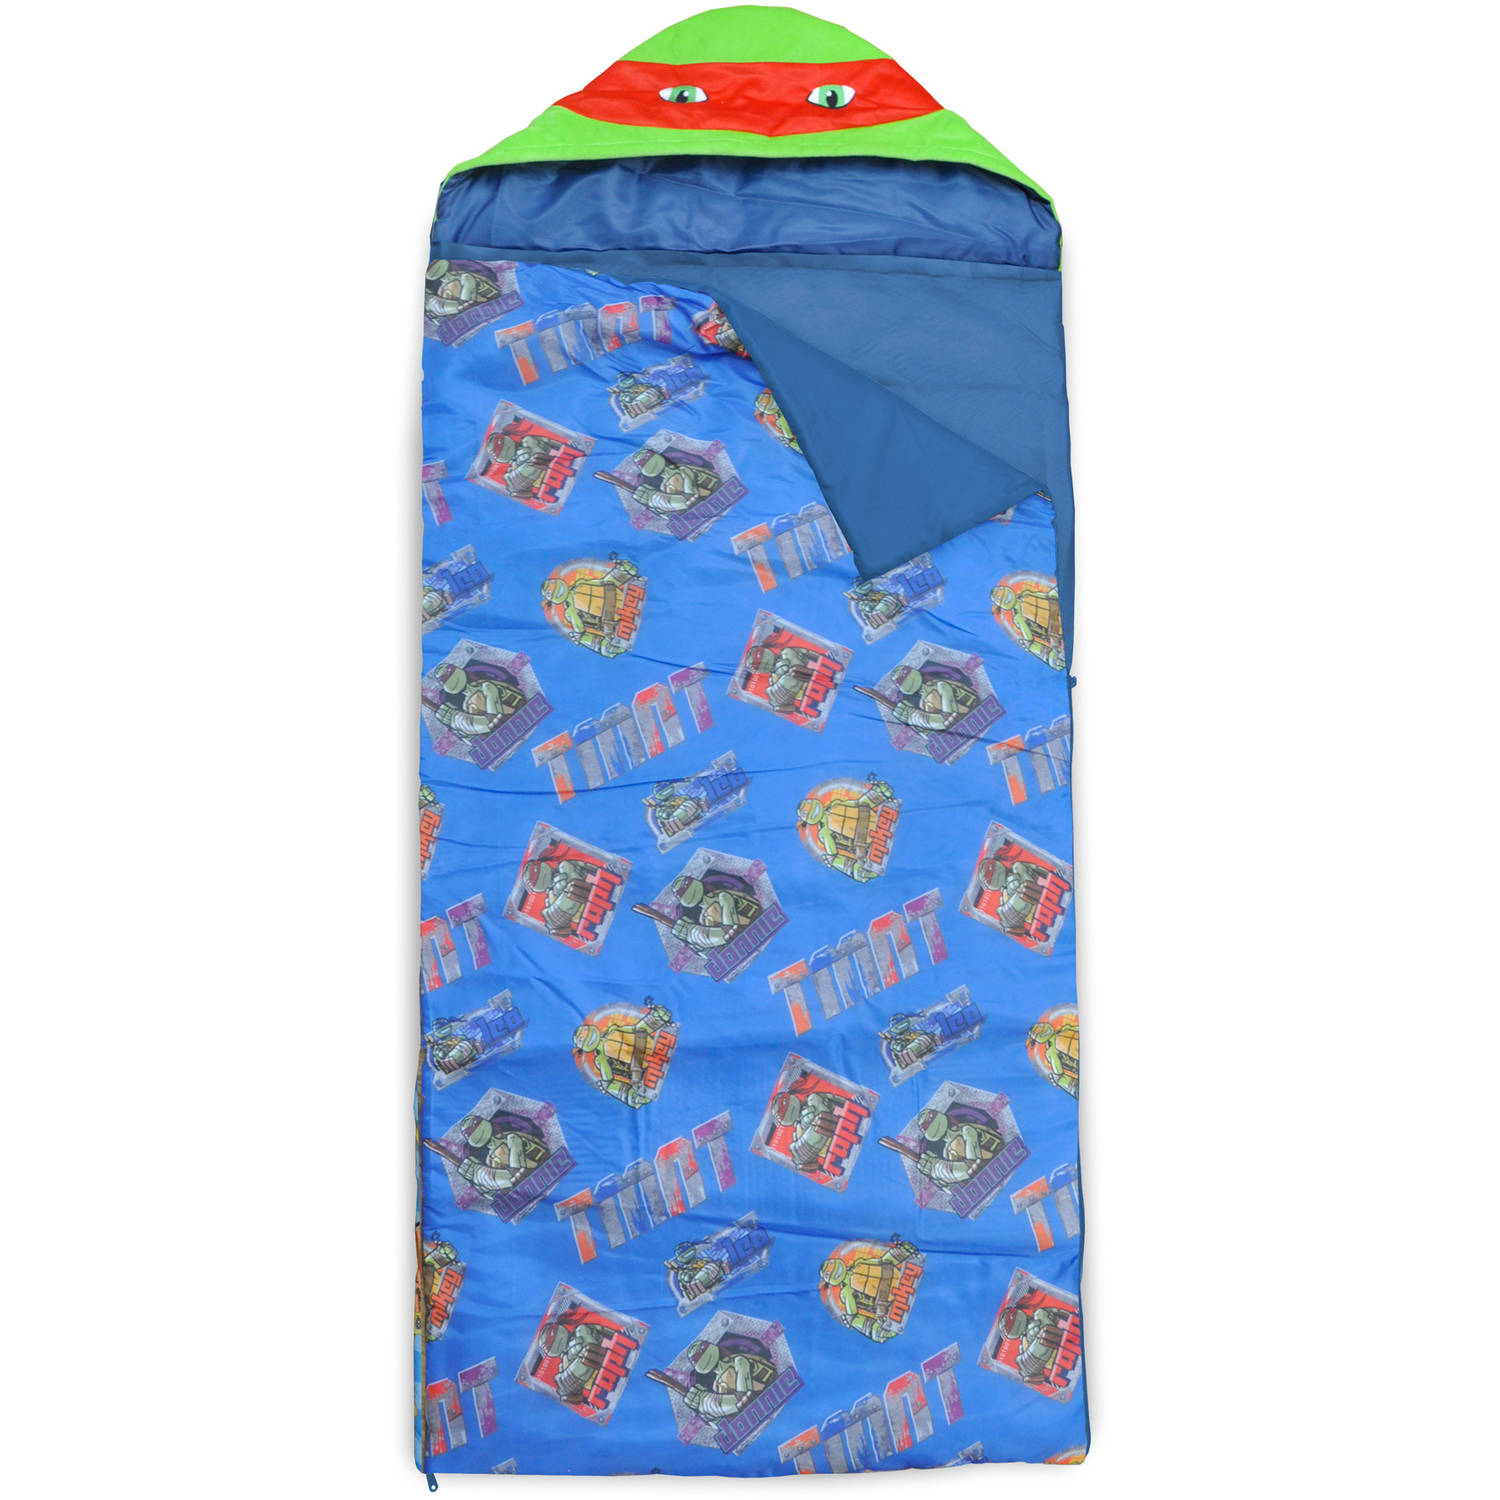 Nickelodeon Teenage Mutant Ninja Turtles Hooded Sleeping Bag Sack